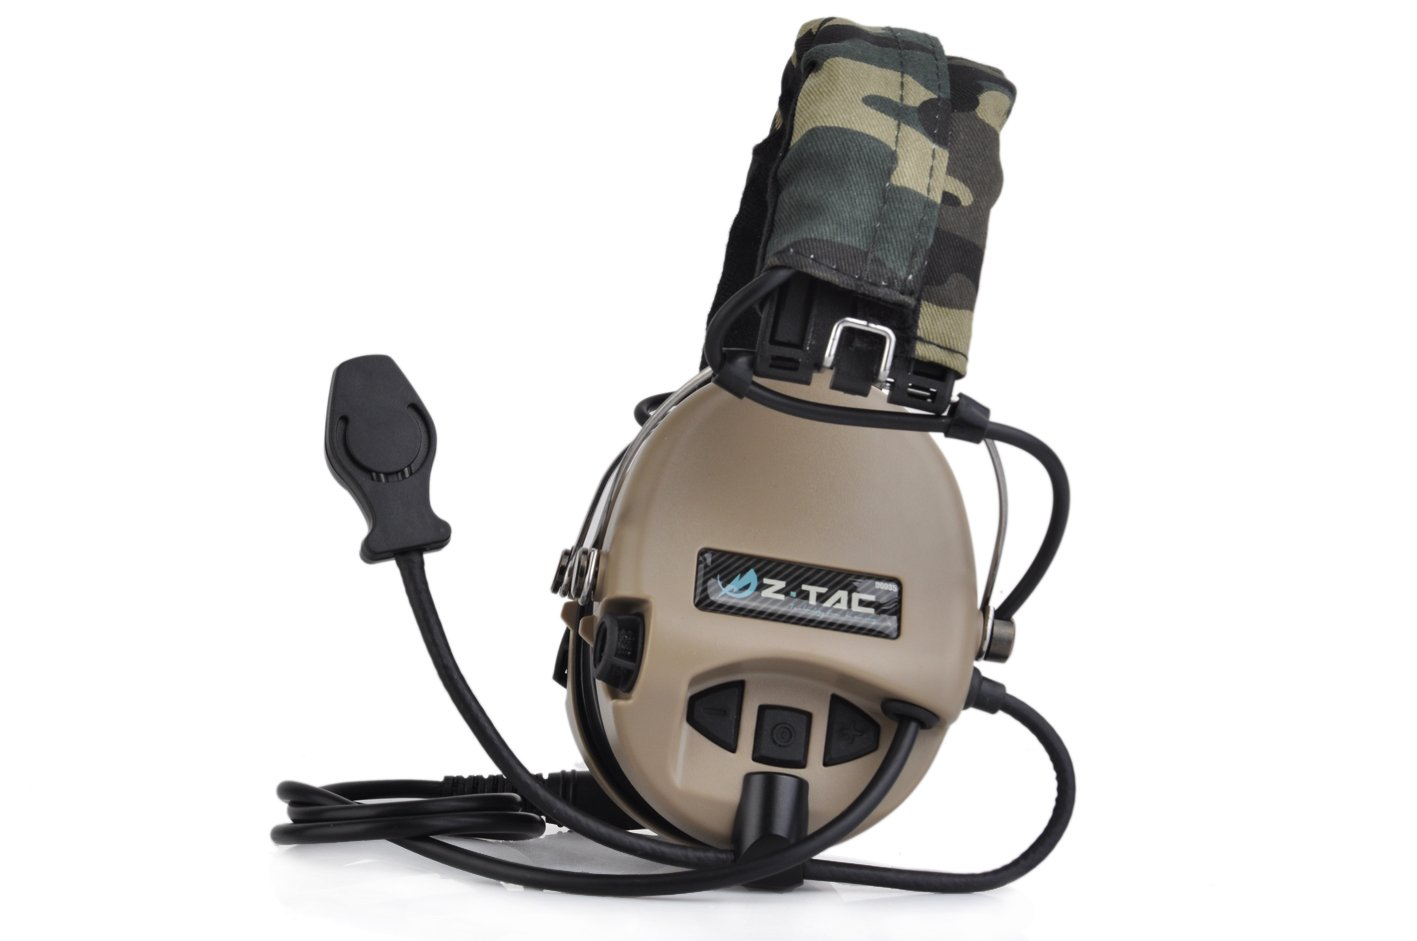 Amazon.com : Element Airsoft Z111 Z-TAC Z-tactical Military Aviation Tactical Headset Sordin Anti-Noise Tactical Hunting Headphones Military Accesorios ...